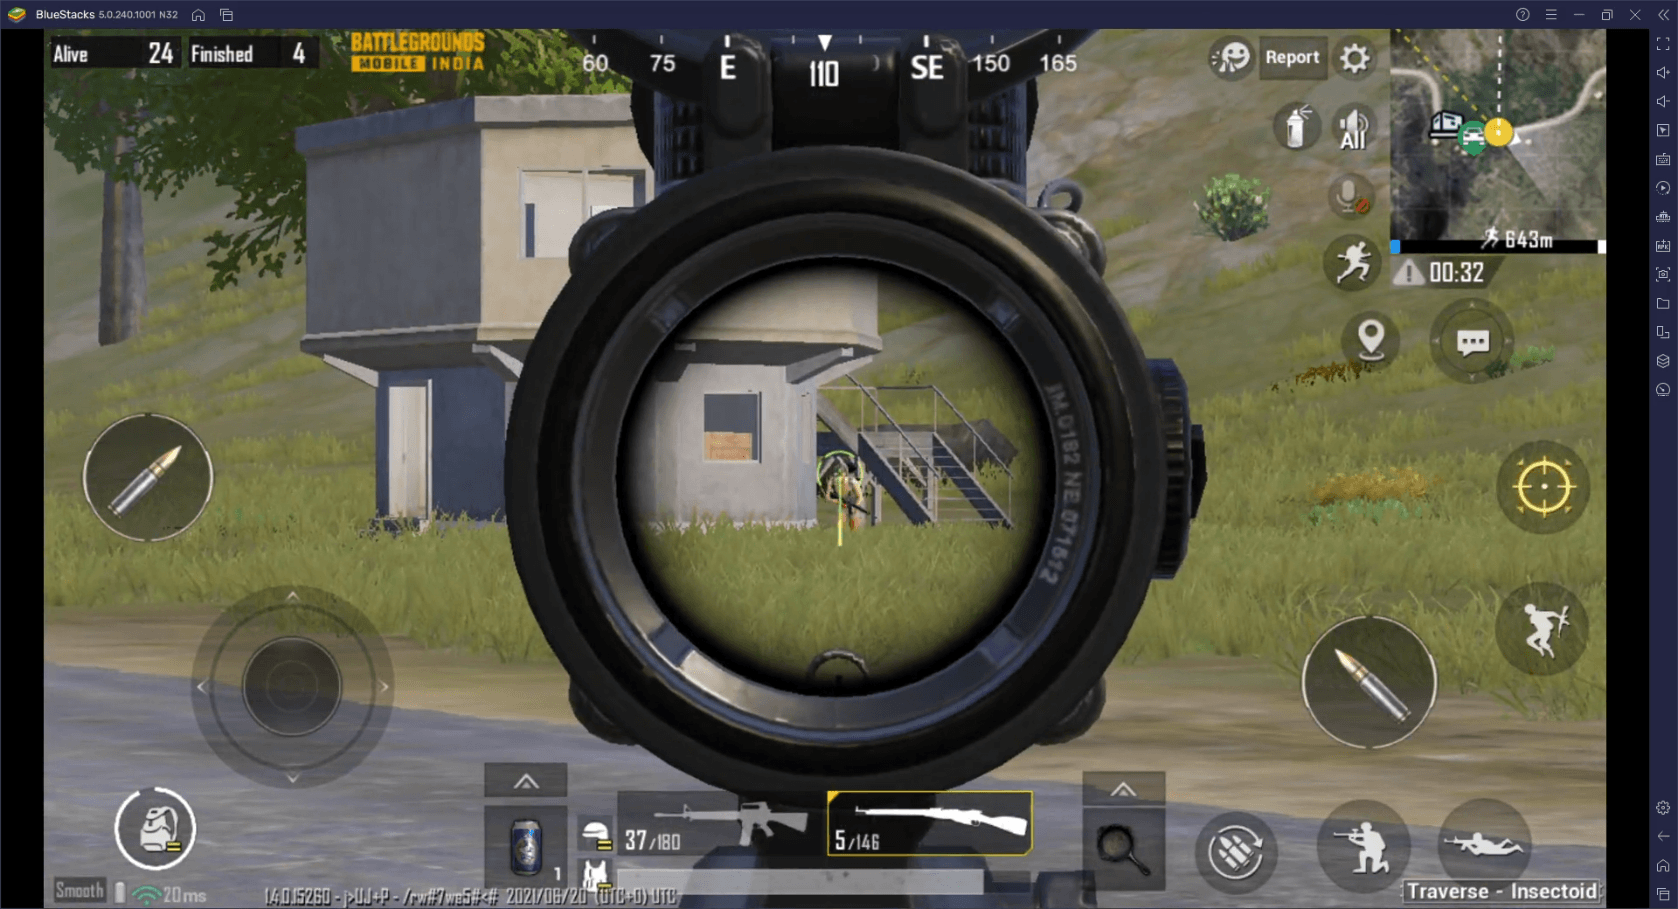 Battlegrounds Mobile India – Smart Controls Coming to BGMI with Latest BlueStacks 5 Update